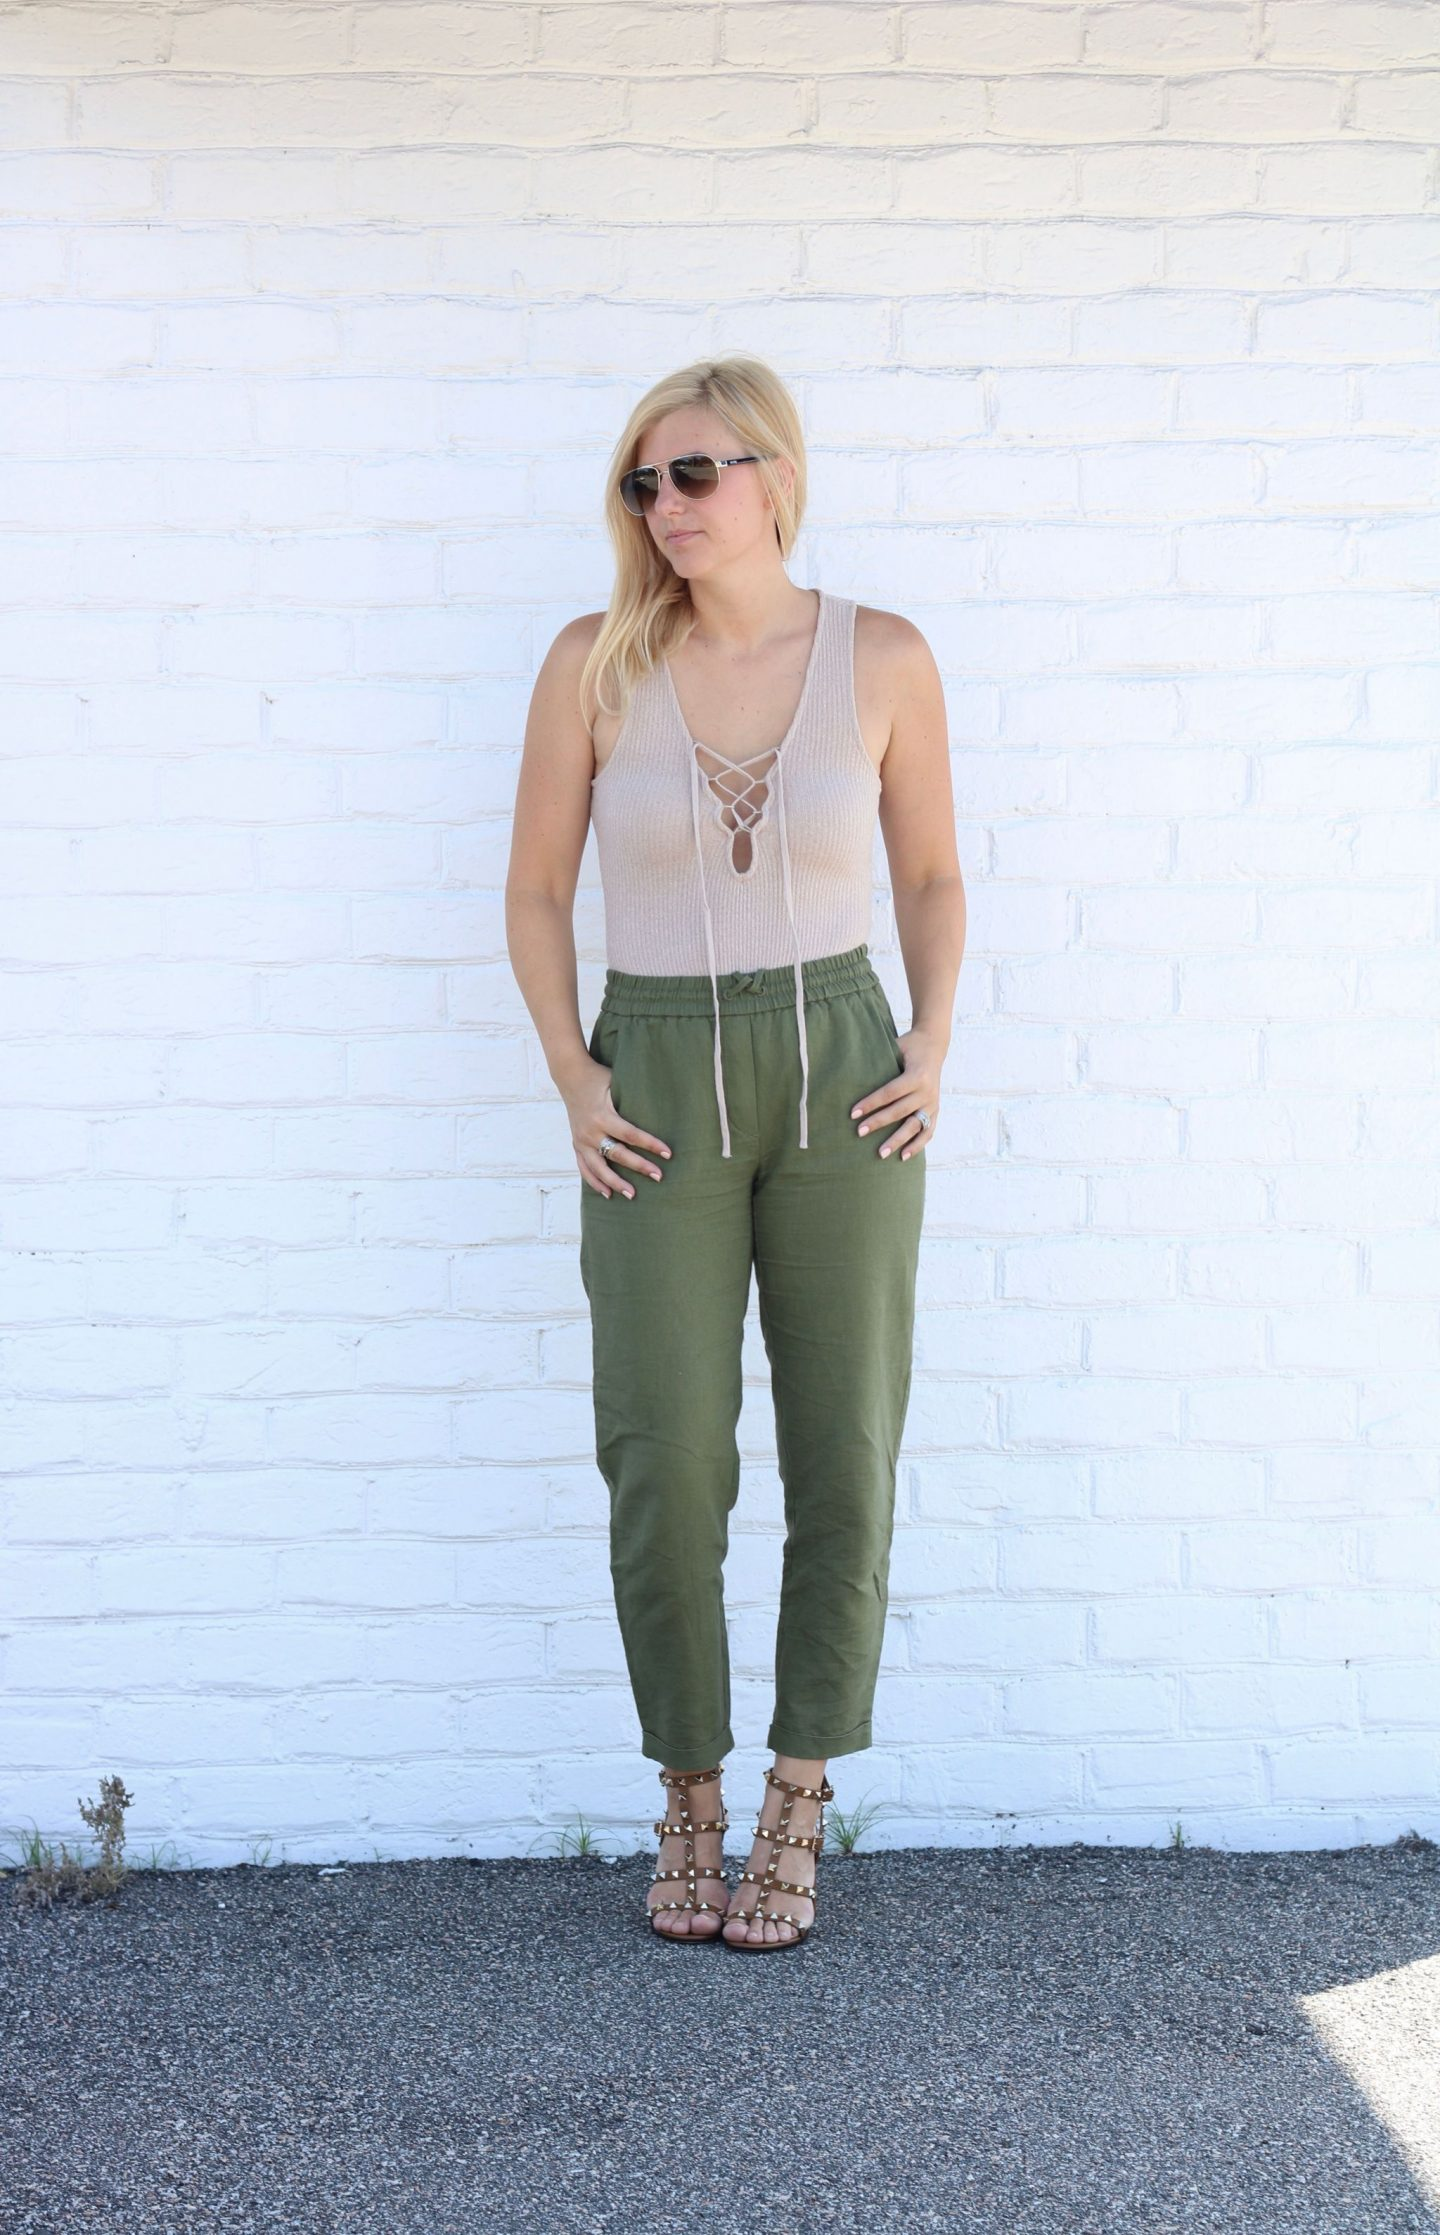 j.crew-linen-pants, lace-up-bodysuit, aviator-sunglasses, valentino-rockstud-heels